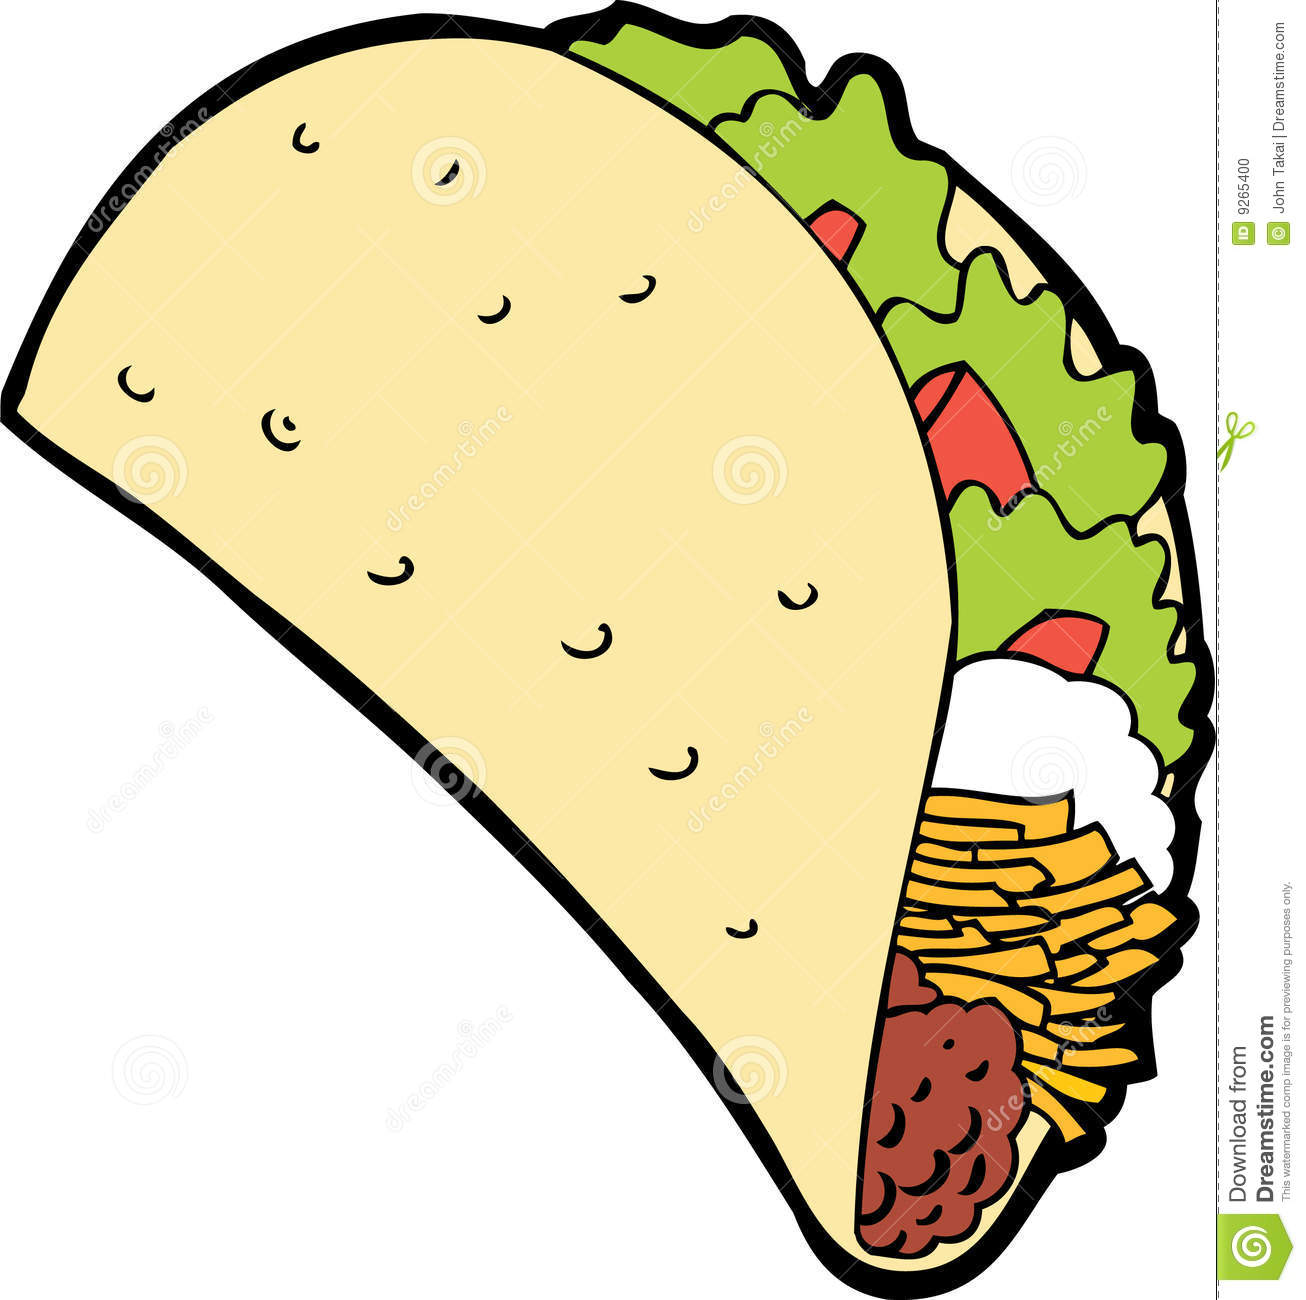 Easy To Draw Tacos Clipart Fish taco clipart - clipart kid